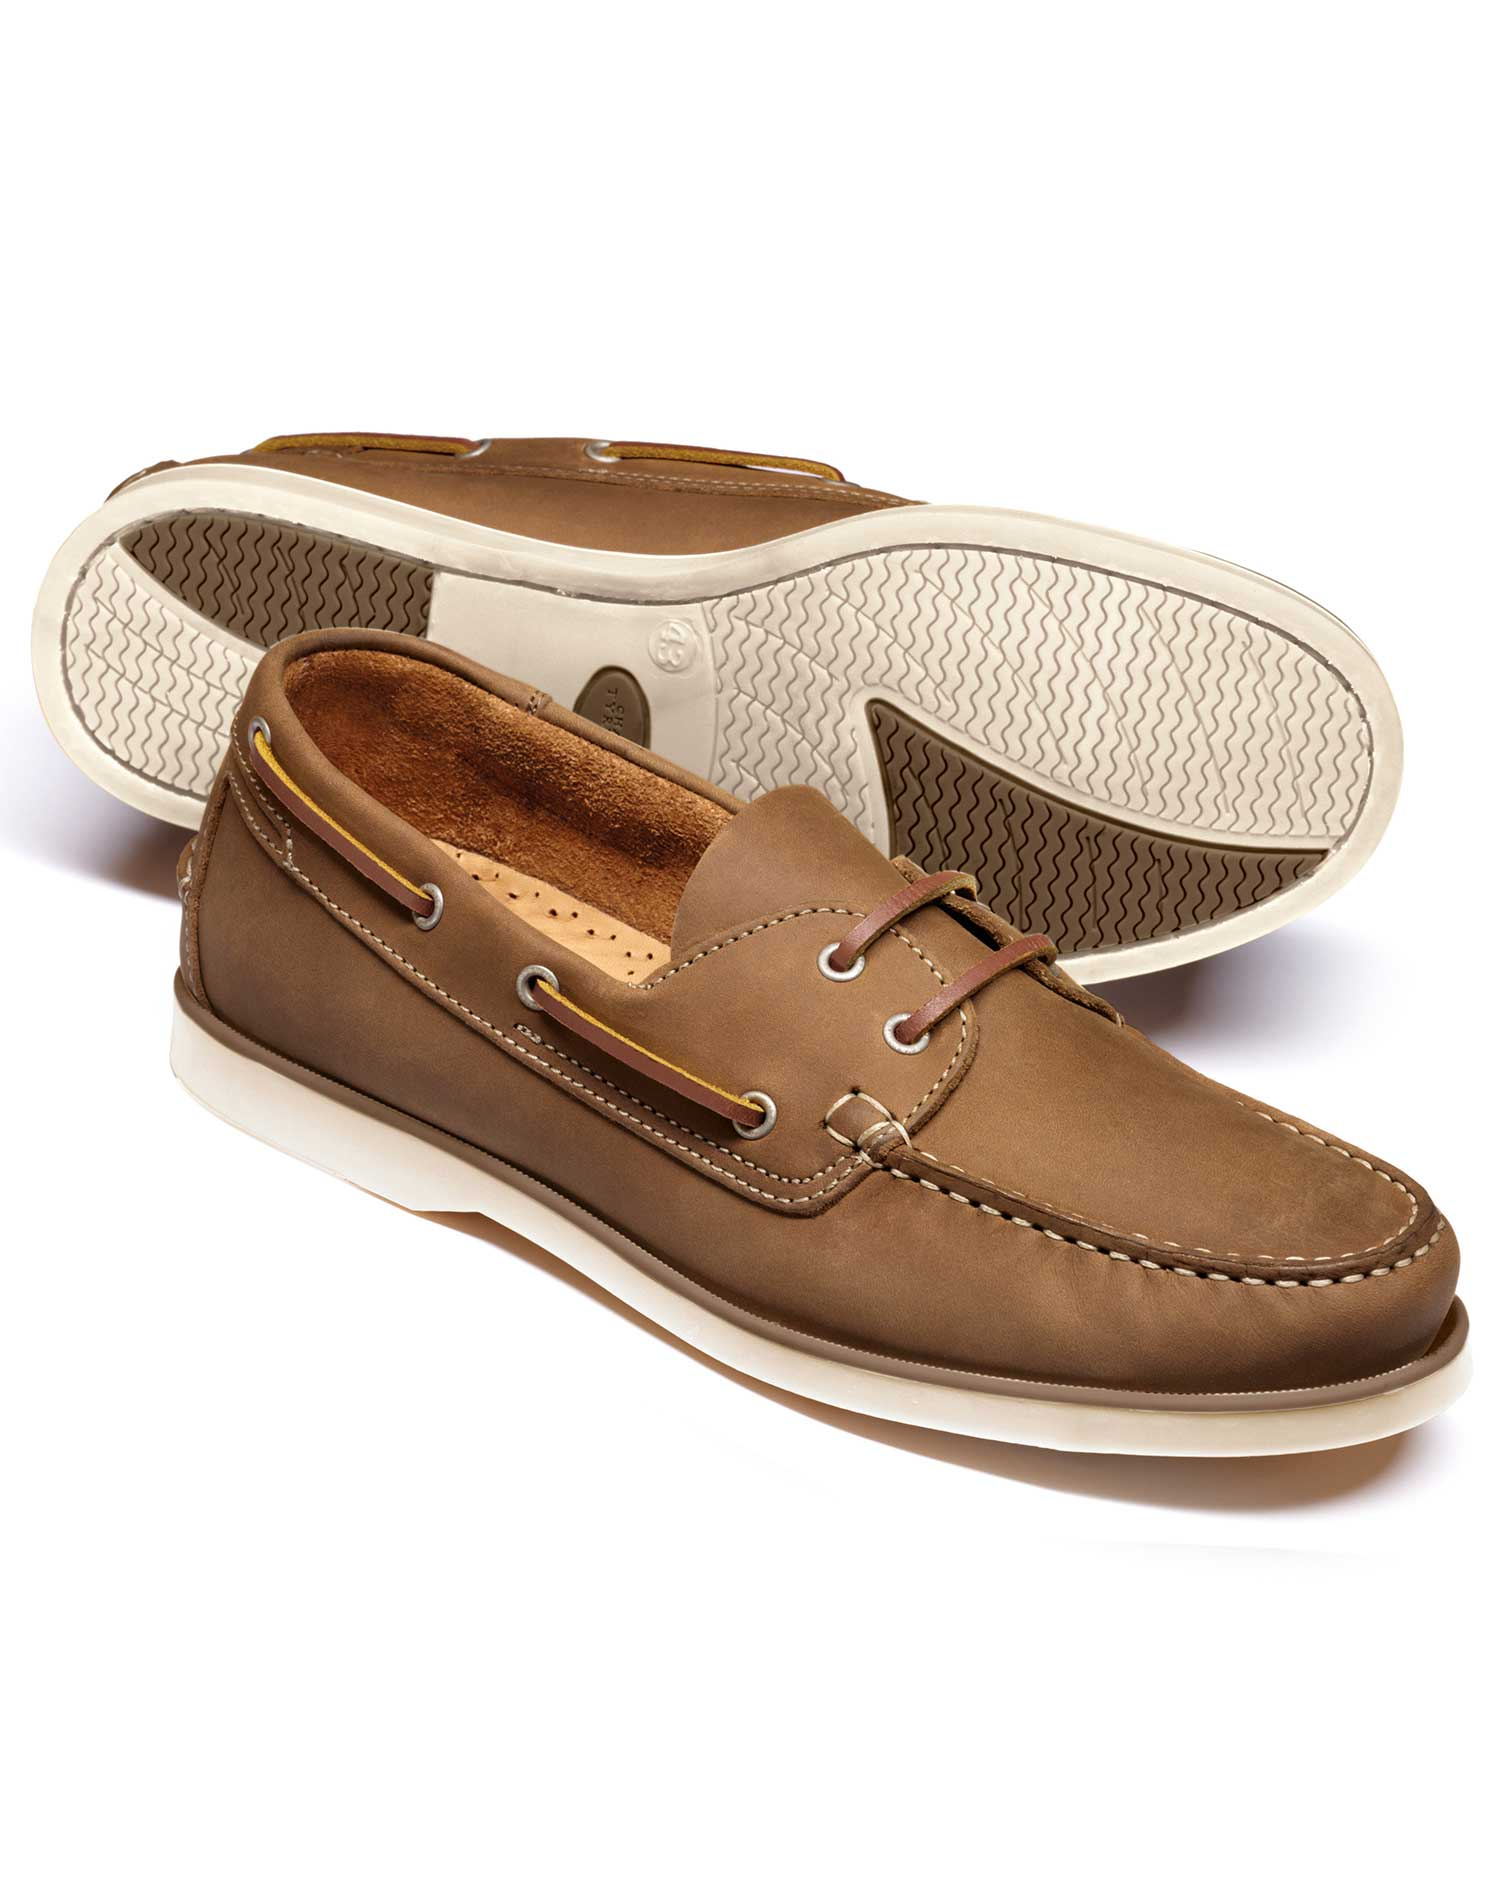 Tan Fowey Boat Shoes Size 7 R by Charles Tyrwhitt